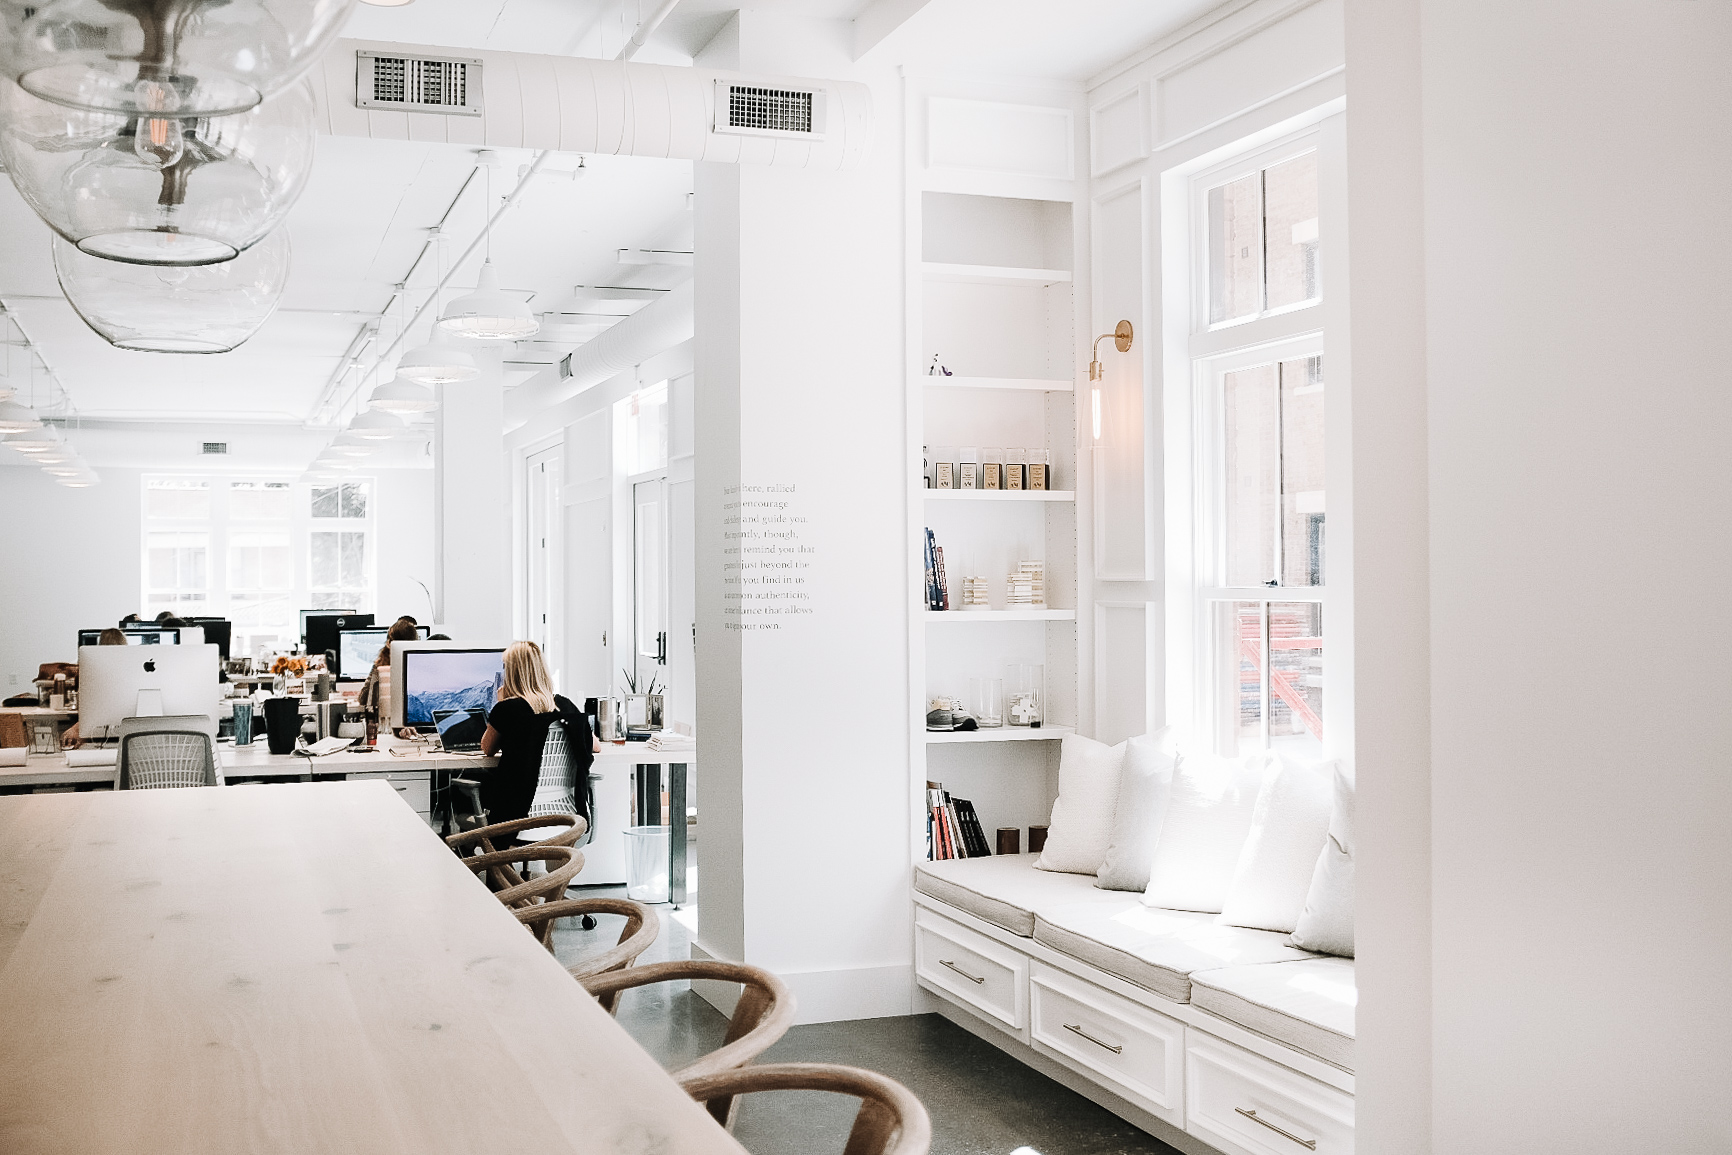 VISIT THE DESIGN STUDIO - Featuring open desking and a 16-foot family table, the Design Studio gets the creative juices flowing for team TENFOLD.